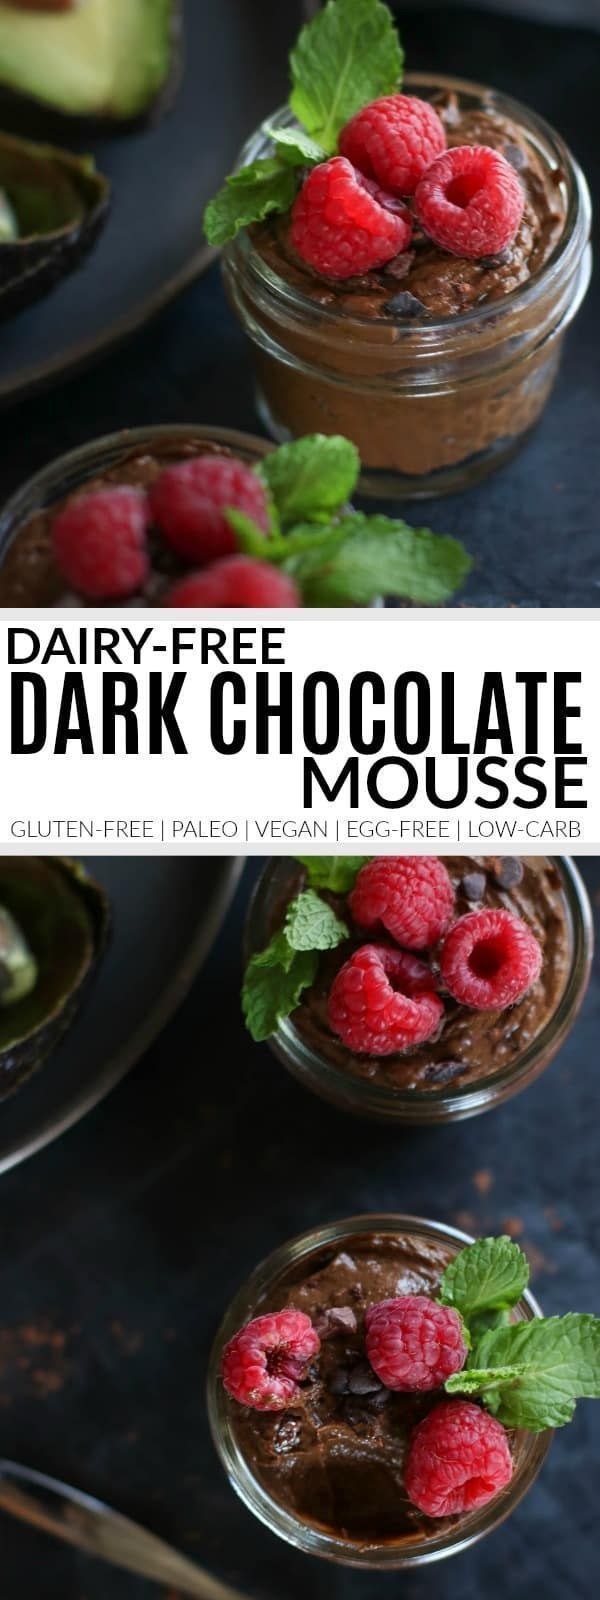 Dairy Free Dark Chocolate Mousse   gluten-free chocolate mousse   paleo chocolate mousse   vegan chocolate mousse   healthy chocolate mousse recipe   healthy dessert recipes   gluten-free desserts   vegan desserts    The Real Food Dietitians #glutenfreechocolate #vegandessert #chocolatemousse #healthychocolatedesserts #paleofoodrecipes